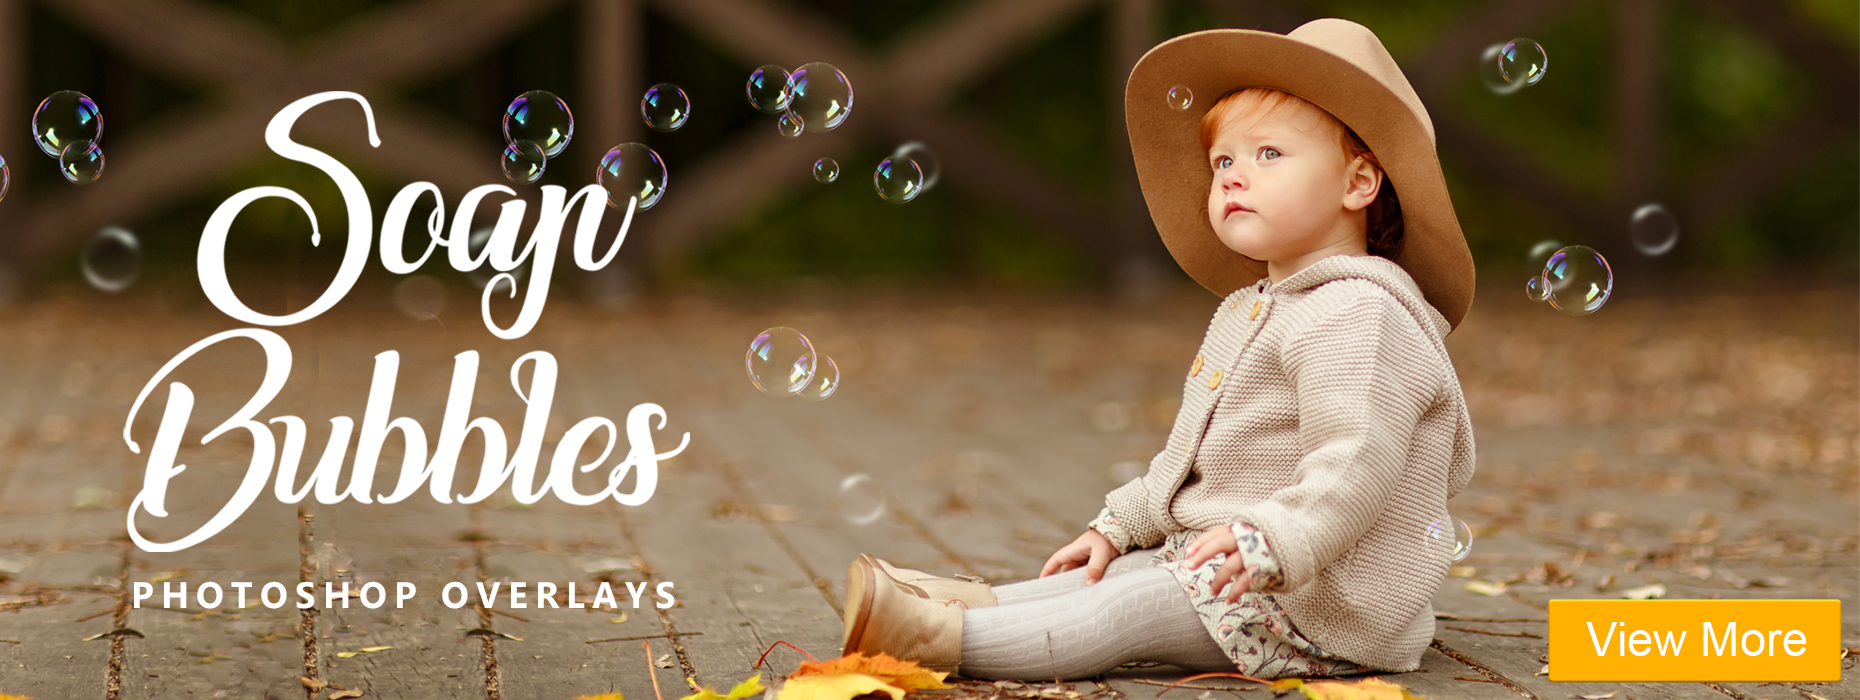 watercolor overlay soap bubbles photoshop overlays banner kid